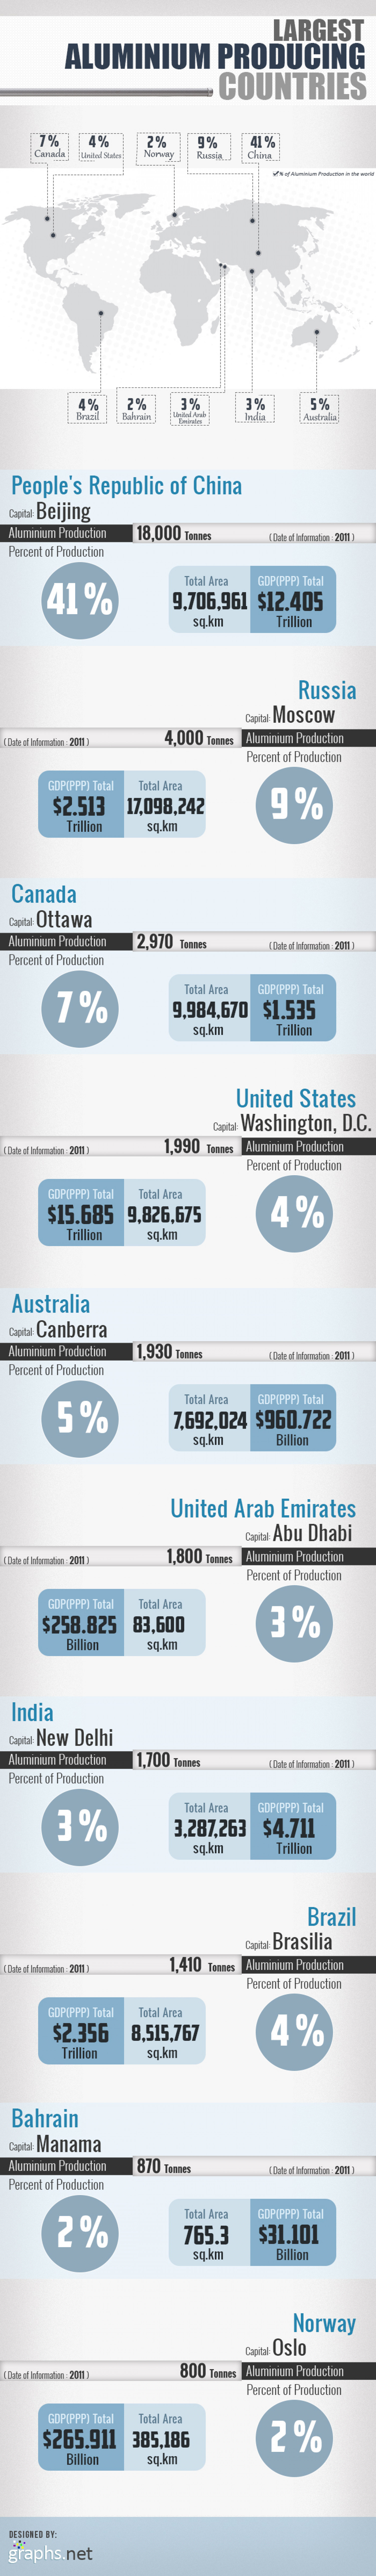 Countries rich in aluminum production  Infographic